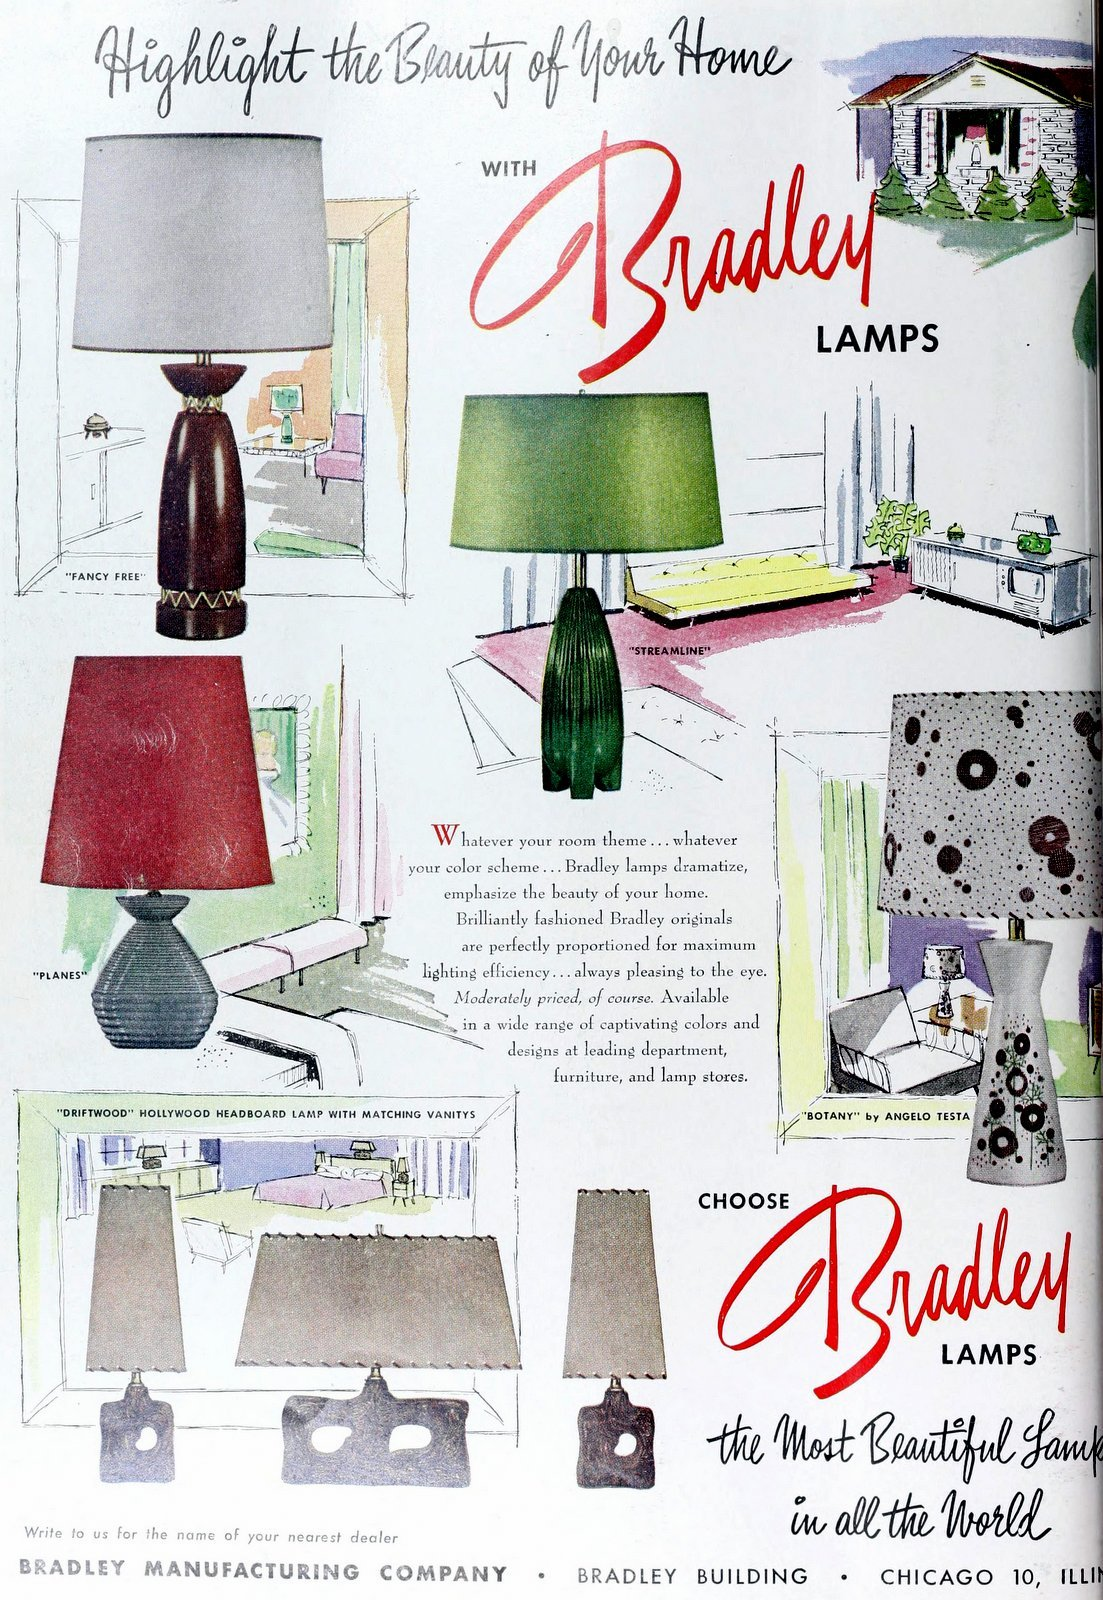 Vintage Bradley lamps for the home (1953)